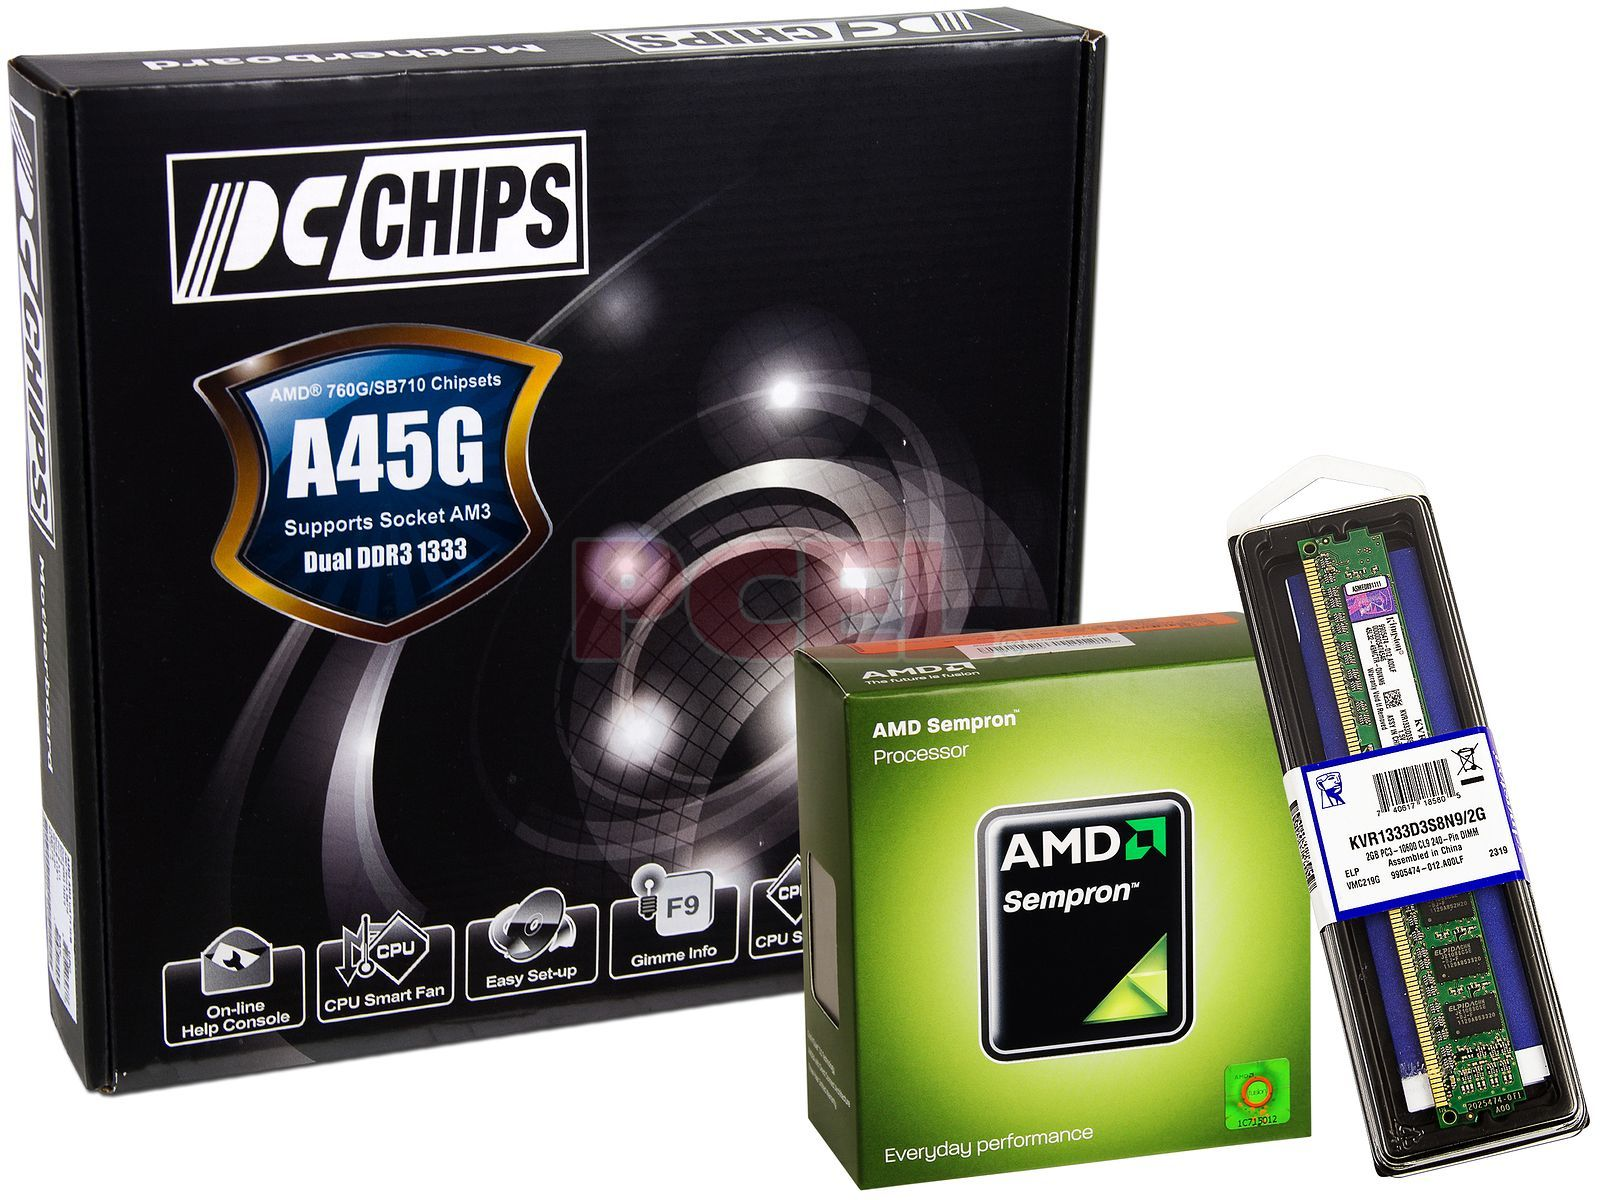 PCCHIPS A45G WINDOWS 10 DOWNLOAD DRIVER